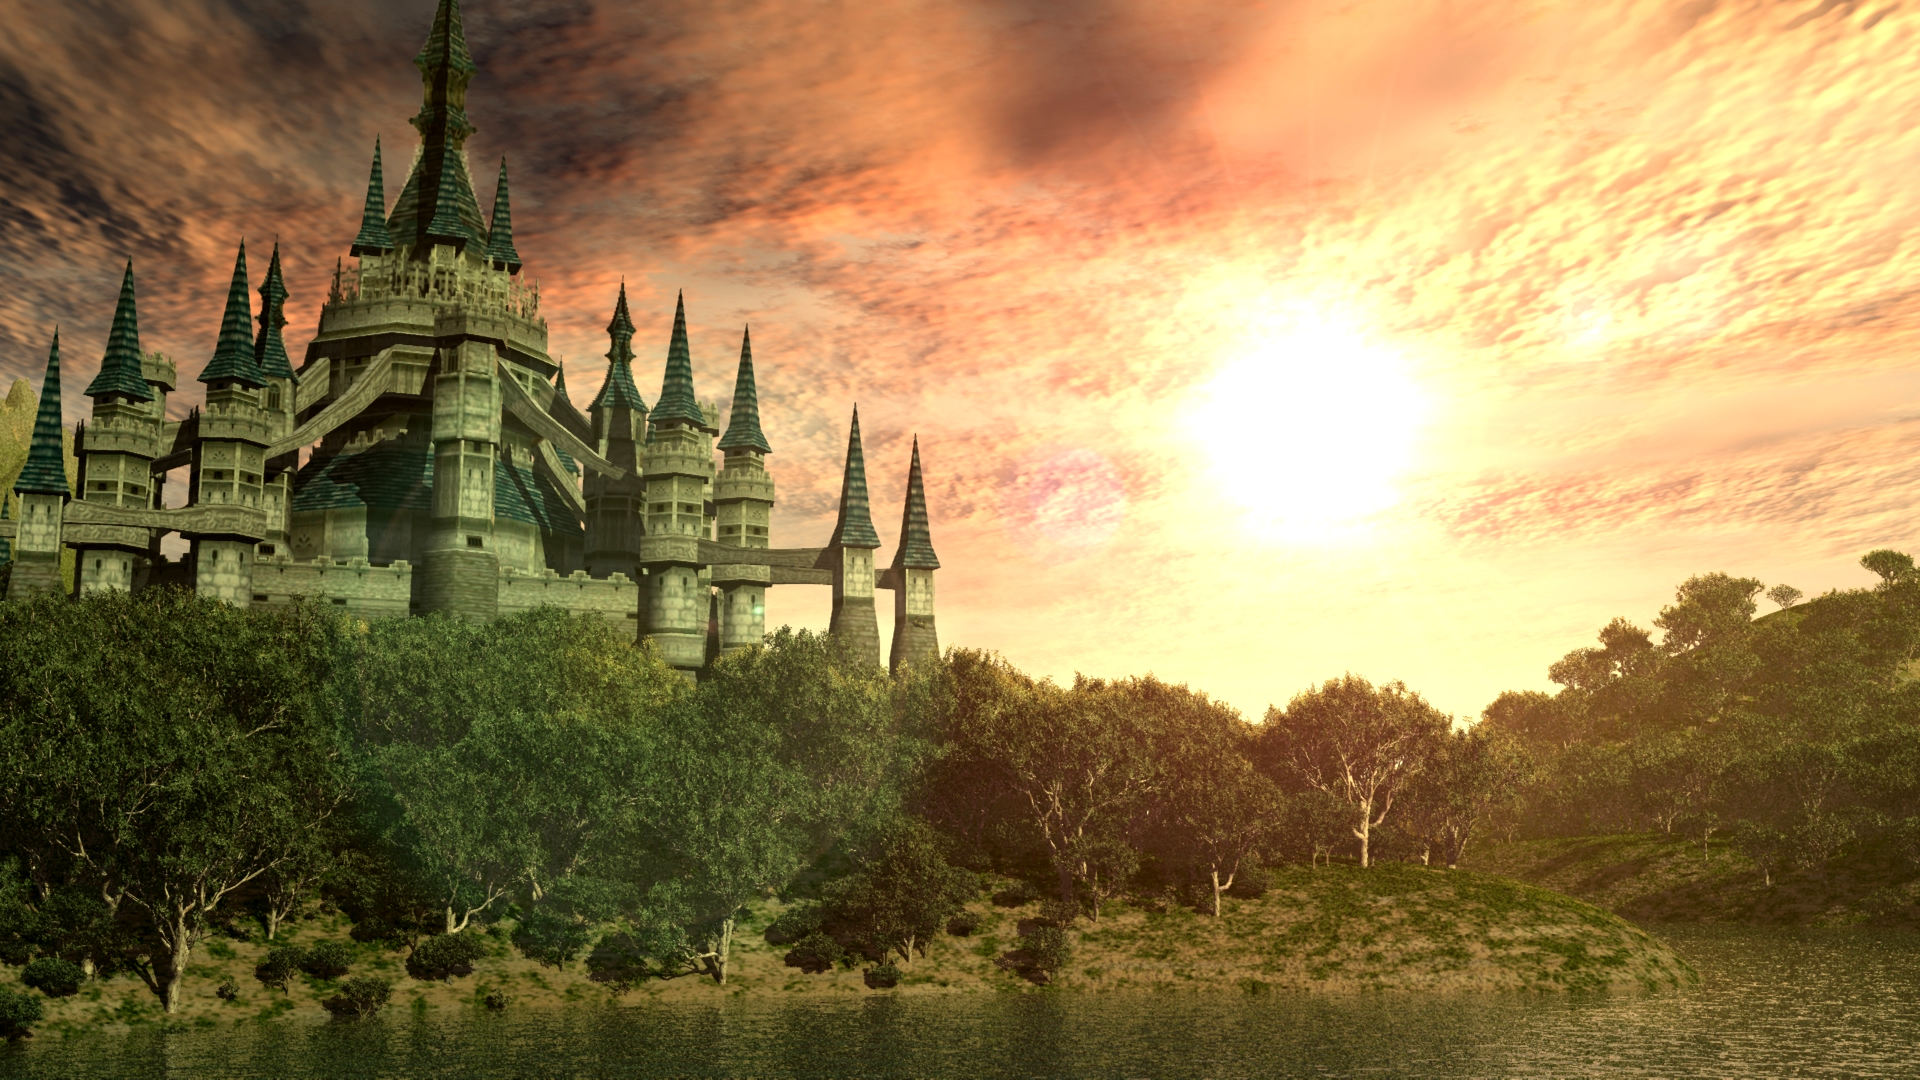 twilight princess hyrule castle desktop 19201080 hd wantedwallpapers 1920x1080